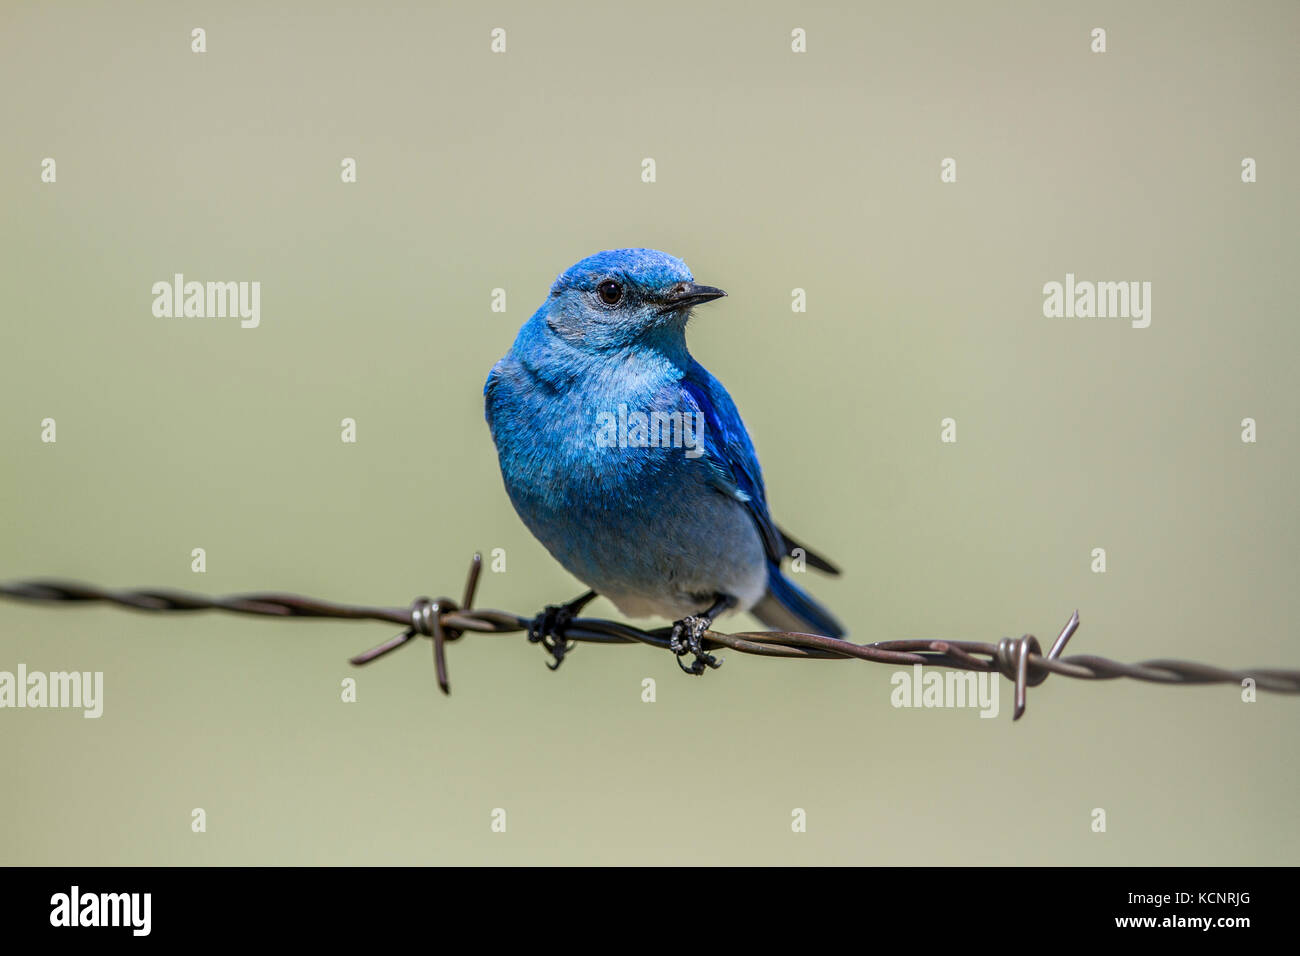 Mountain Bluebird (Sialia currucoides) Beautiful and pretty,  the colorful male bluebird sitting on barbed wire - Stock Image